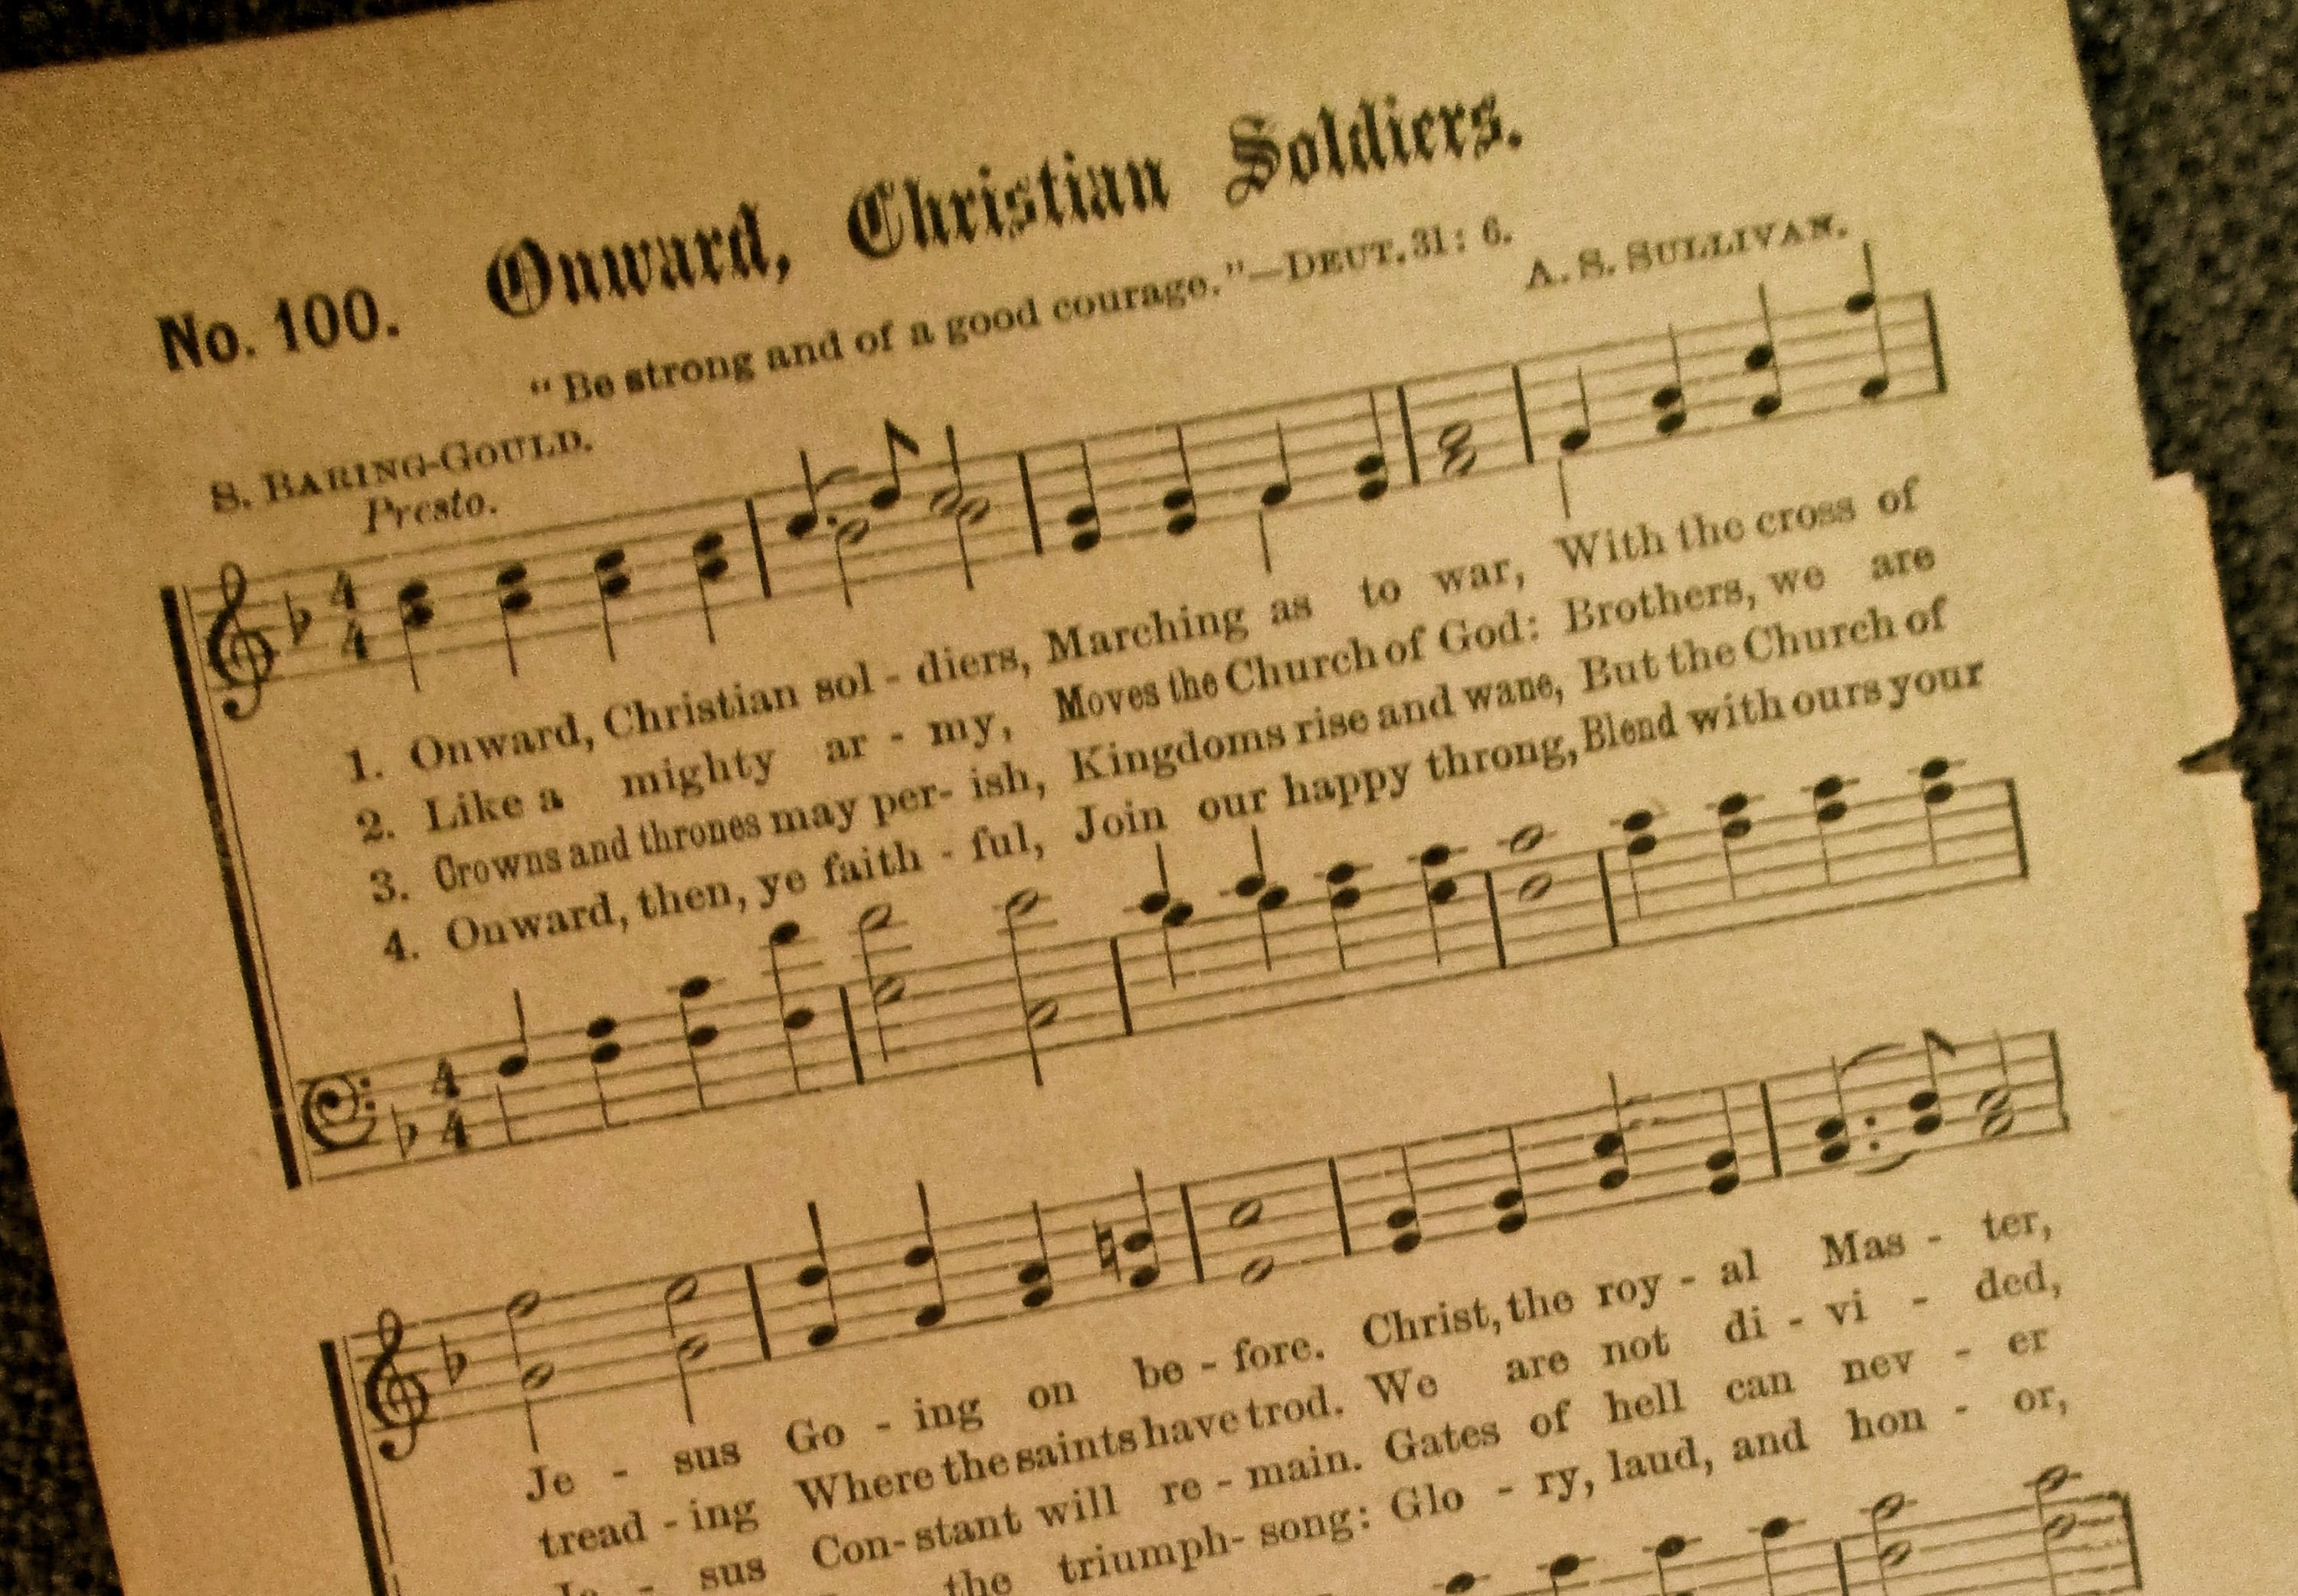 Onward christian soldiers 1887 antique hymnal sheet music christian onward christian soldiers 1887 antique hymnal sheet music christian gifts gospel hymns jesus resurrection easter gift negle Gallery